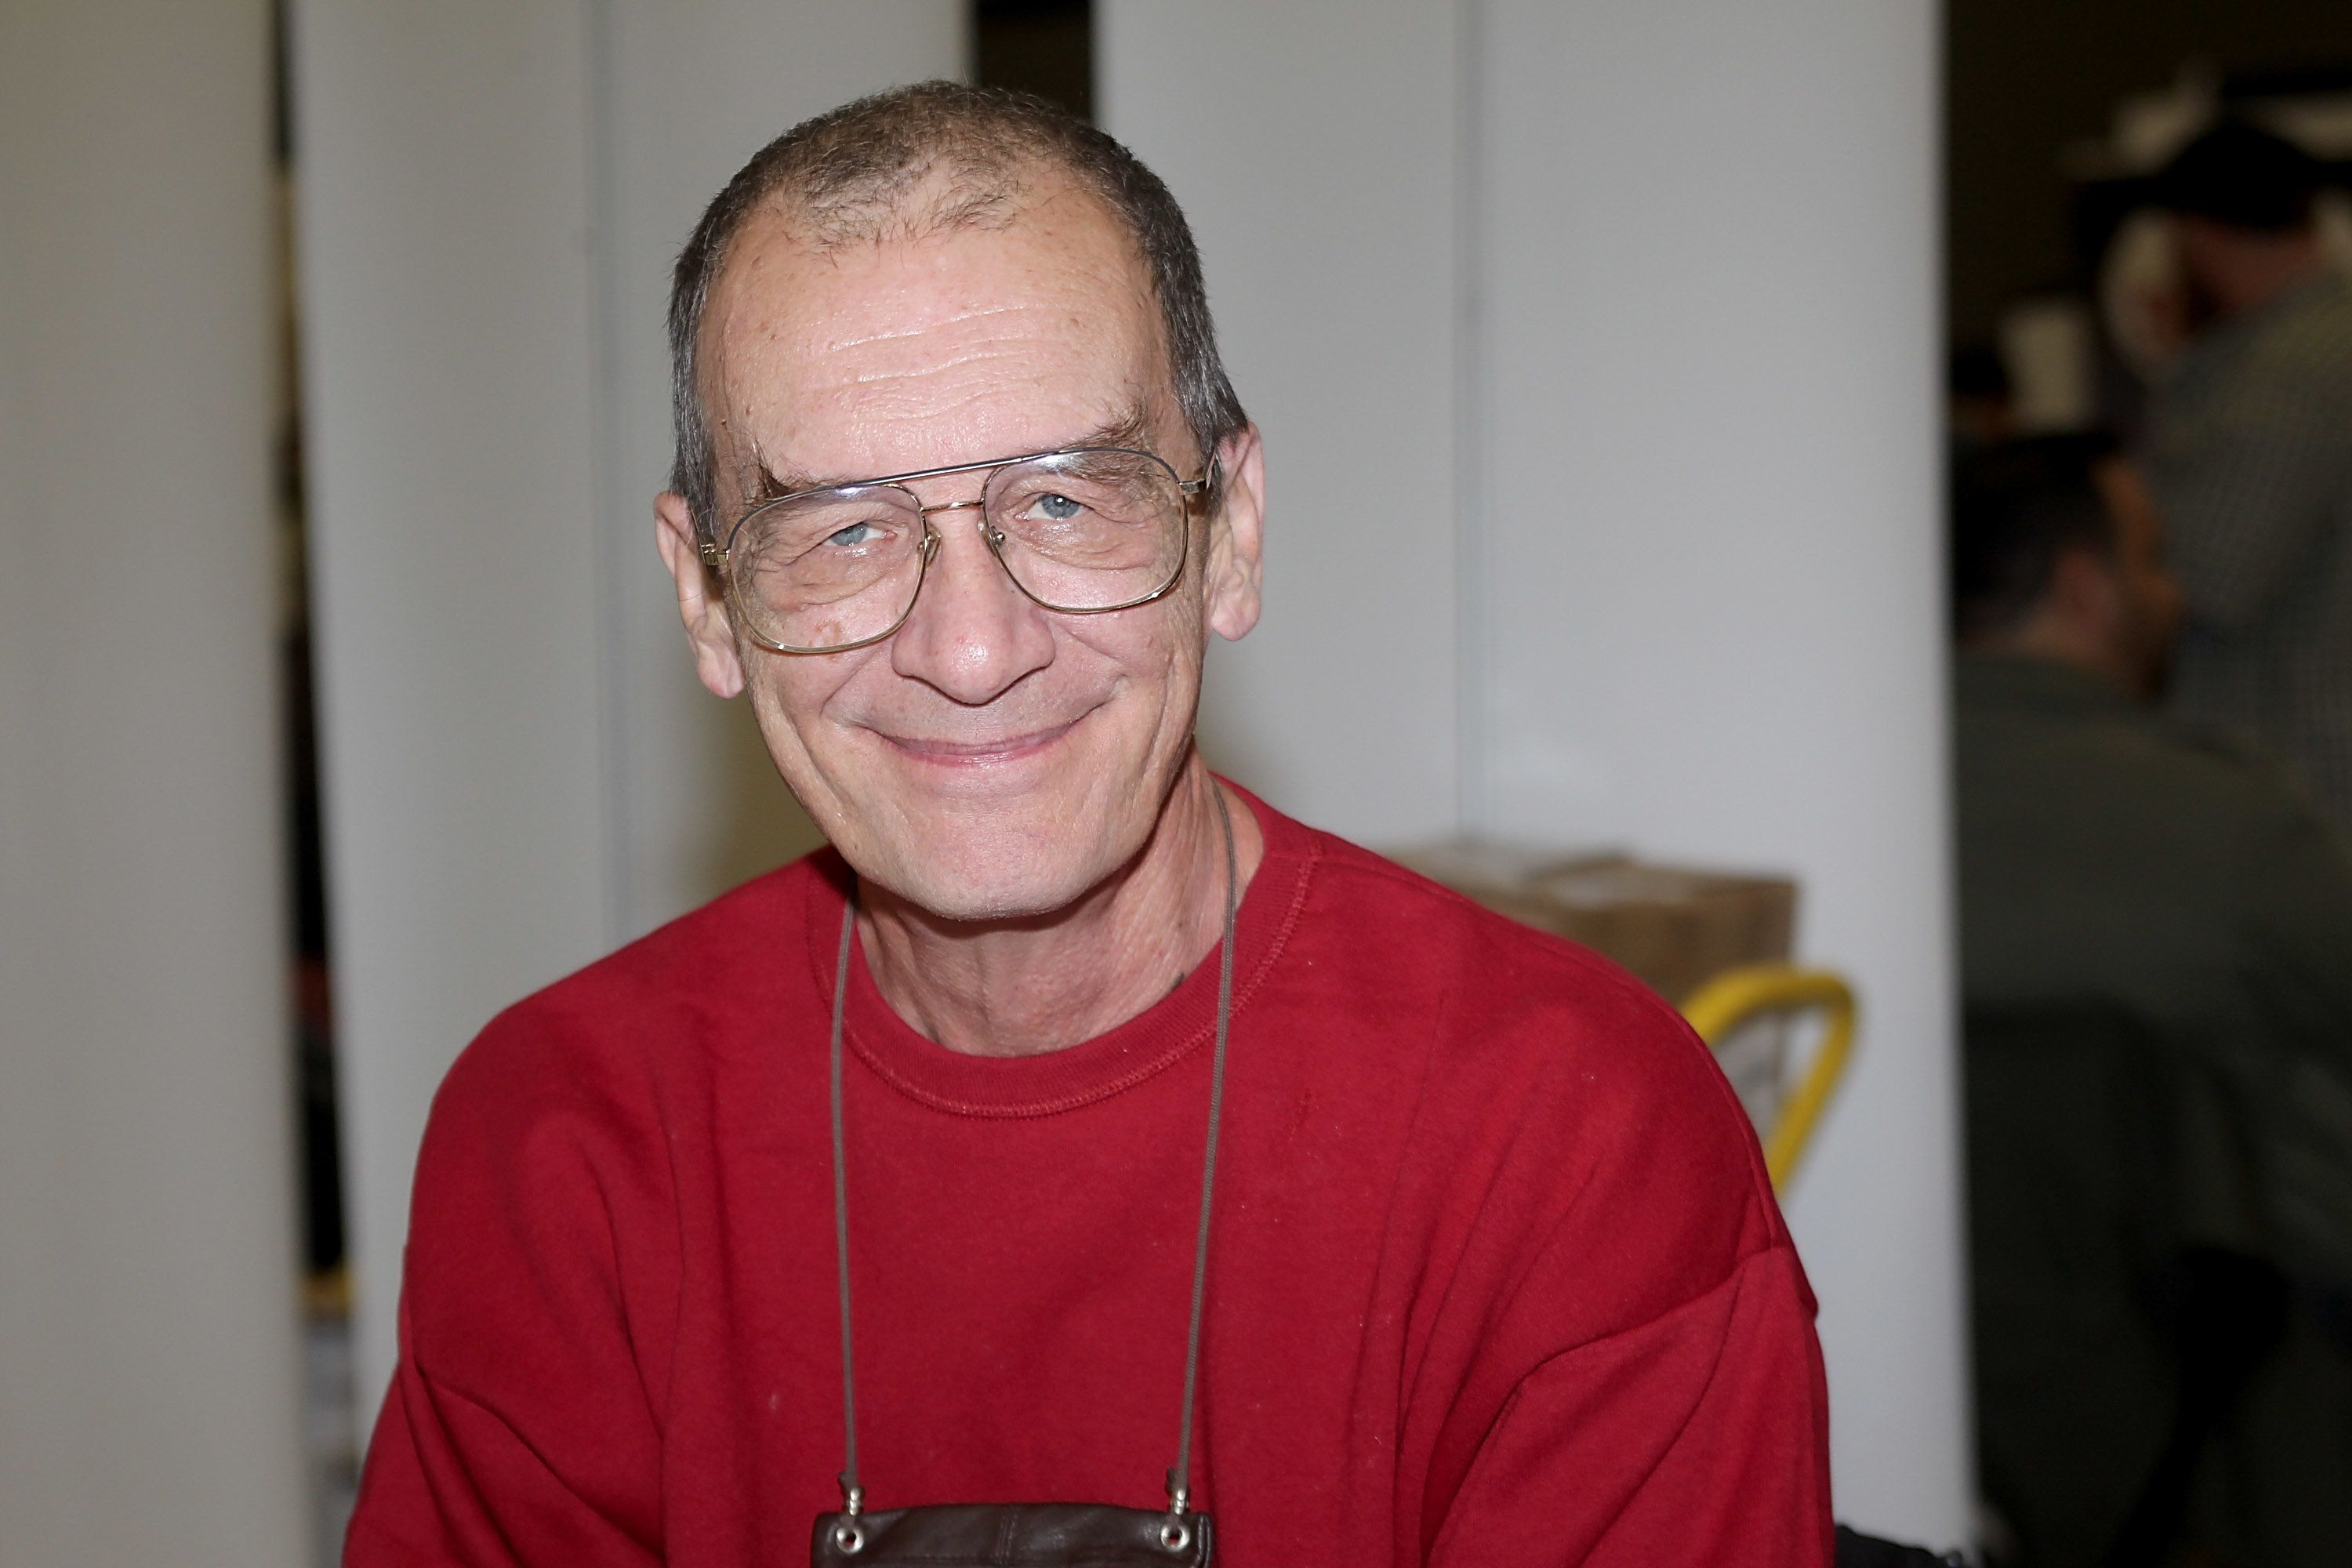 Comic book artist Bernie Wrightson died on Sunday at the age of